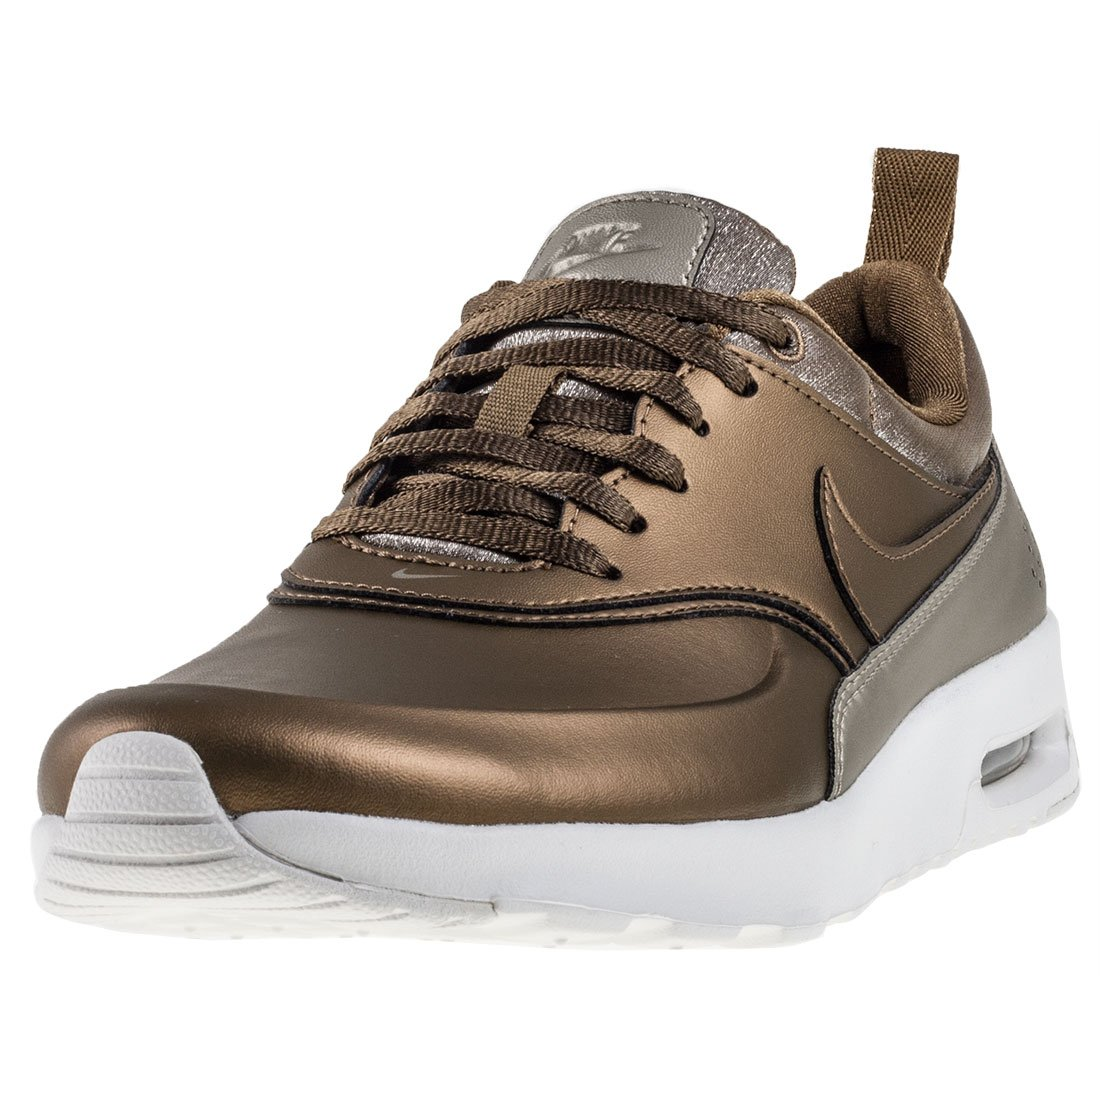 NIKE Basket Air B01MG43JP9 Max 616723-902 Thea Premium - Air 616723-902 Marron da5ef35 - deadsea.space